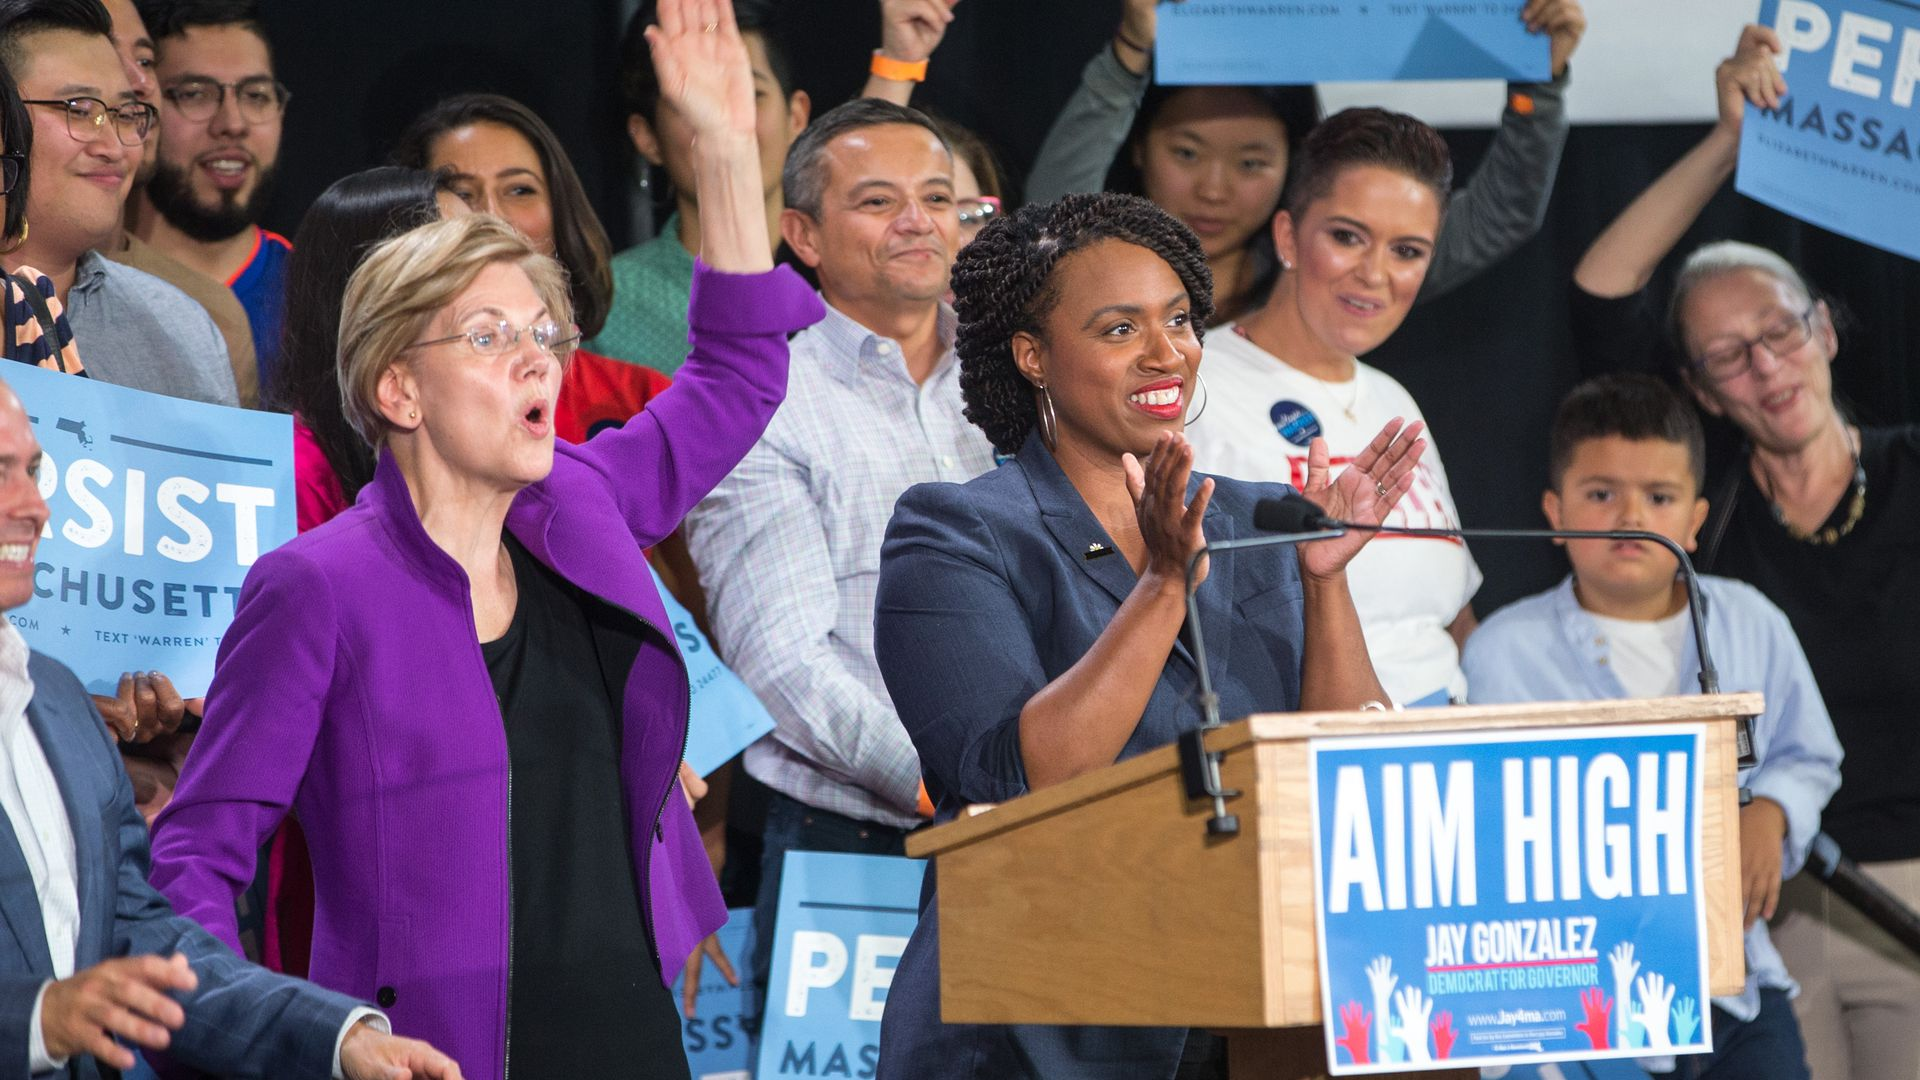 Elizabeth Warren and Ayanna Pressley at a rally.